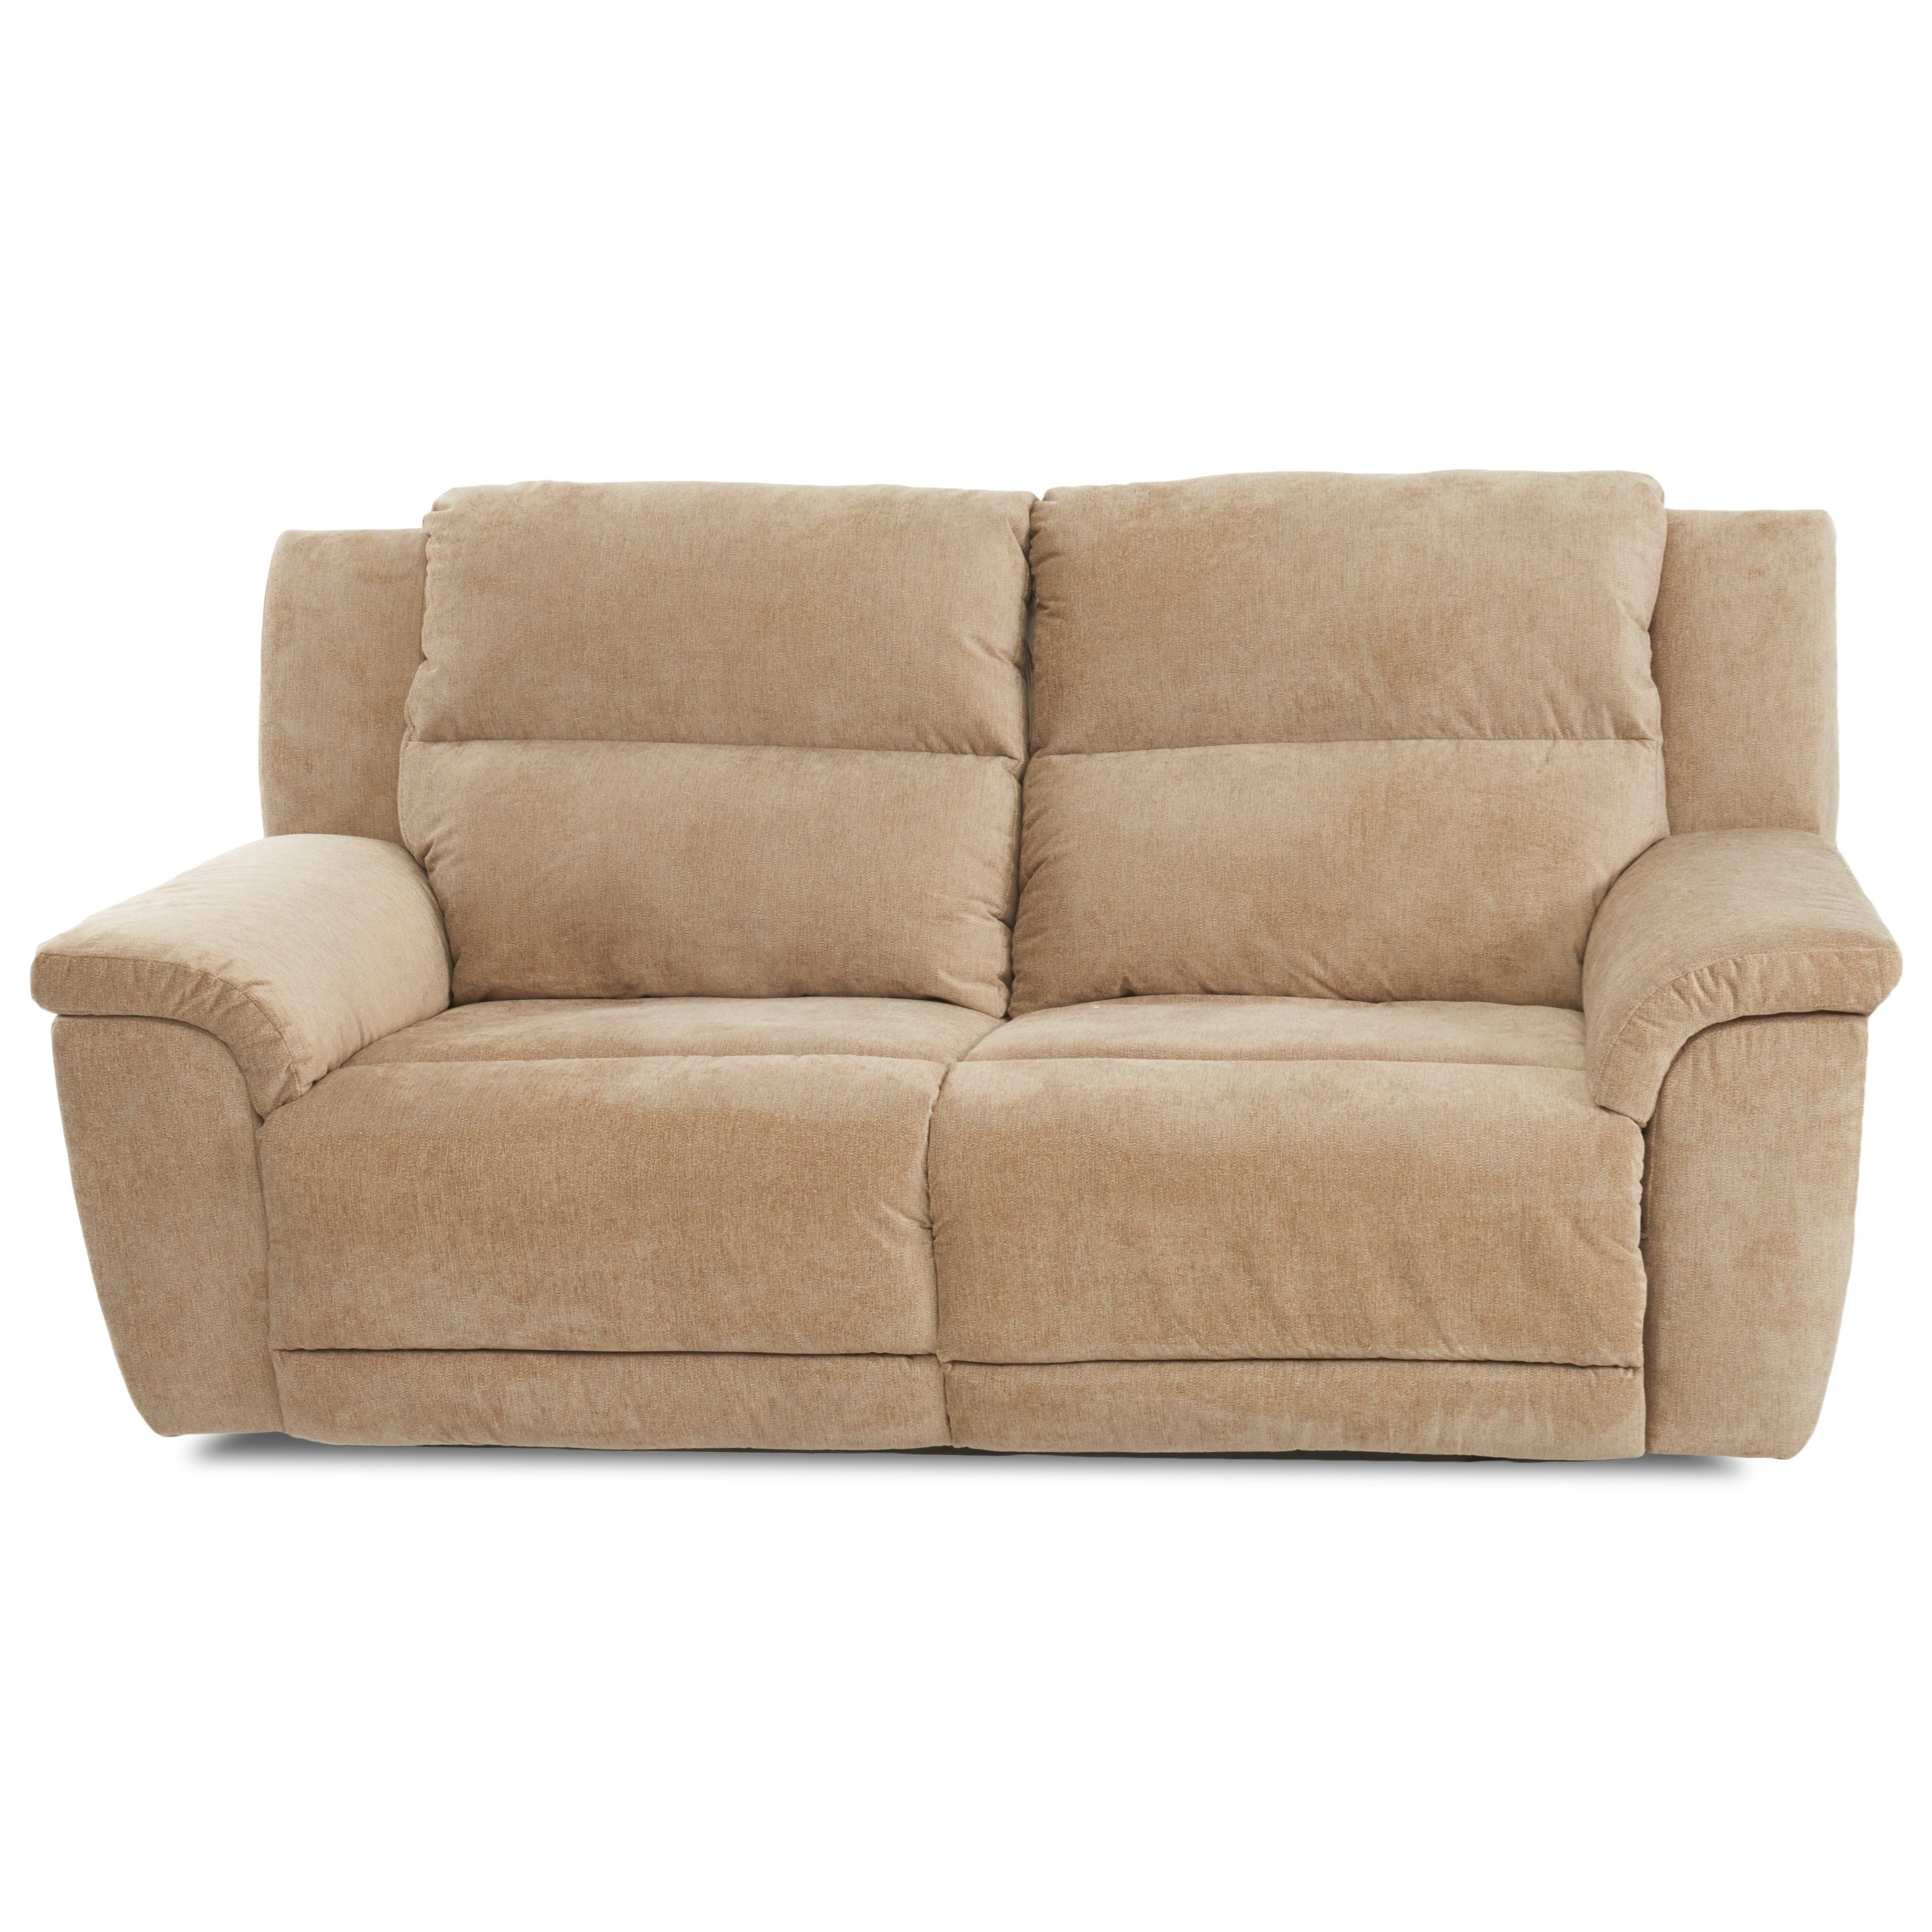 Power Two Seat Reclining Sofa with Power Headrests and USB Ports